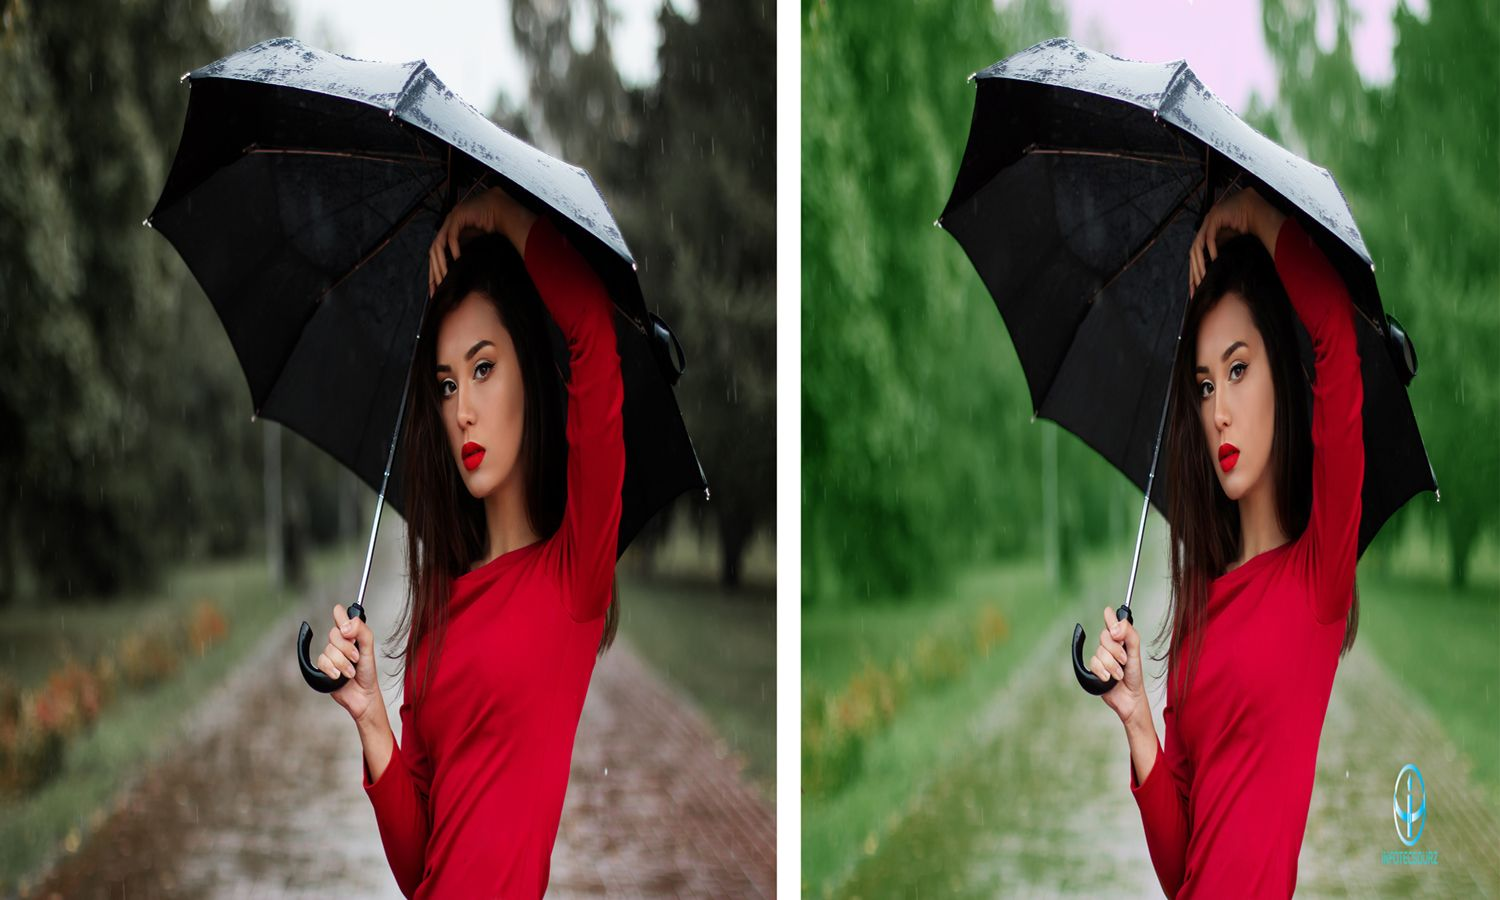 Hi,Are you looking for professional weeding portrait or